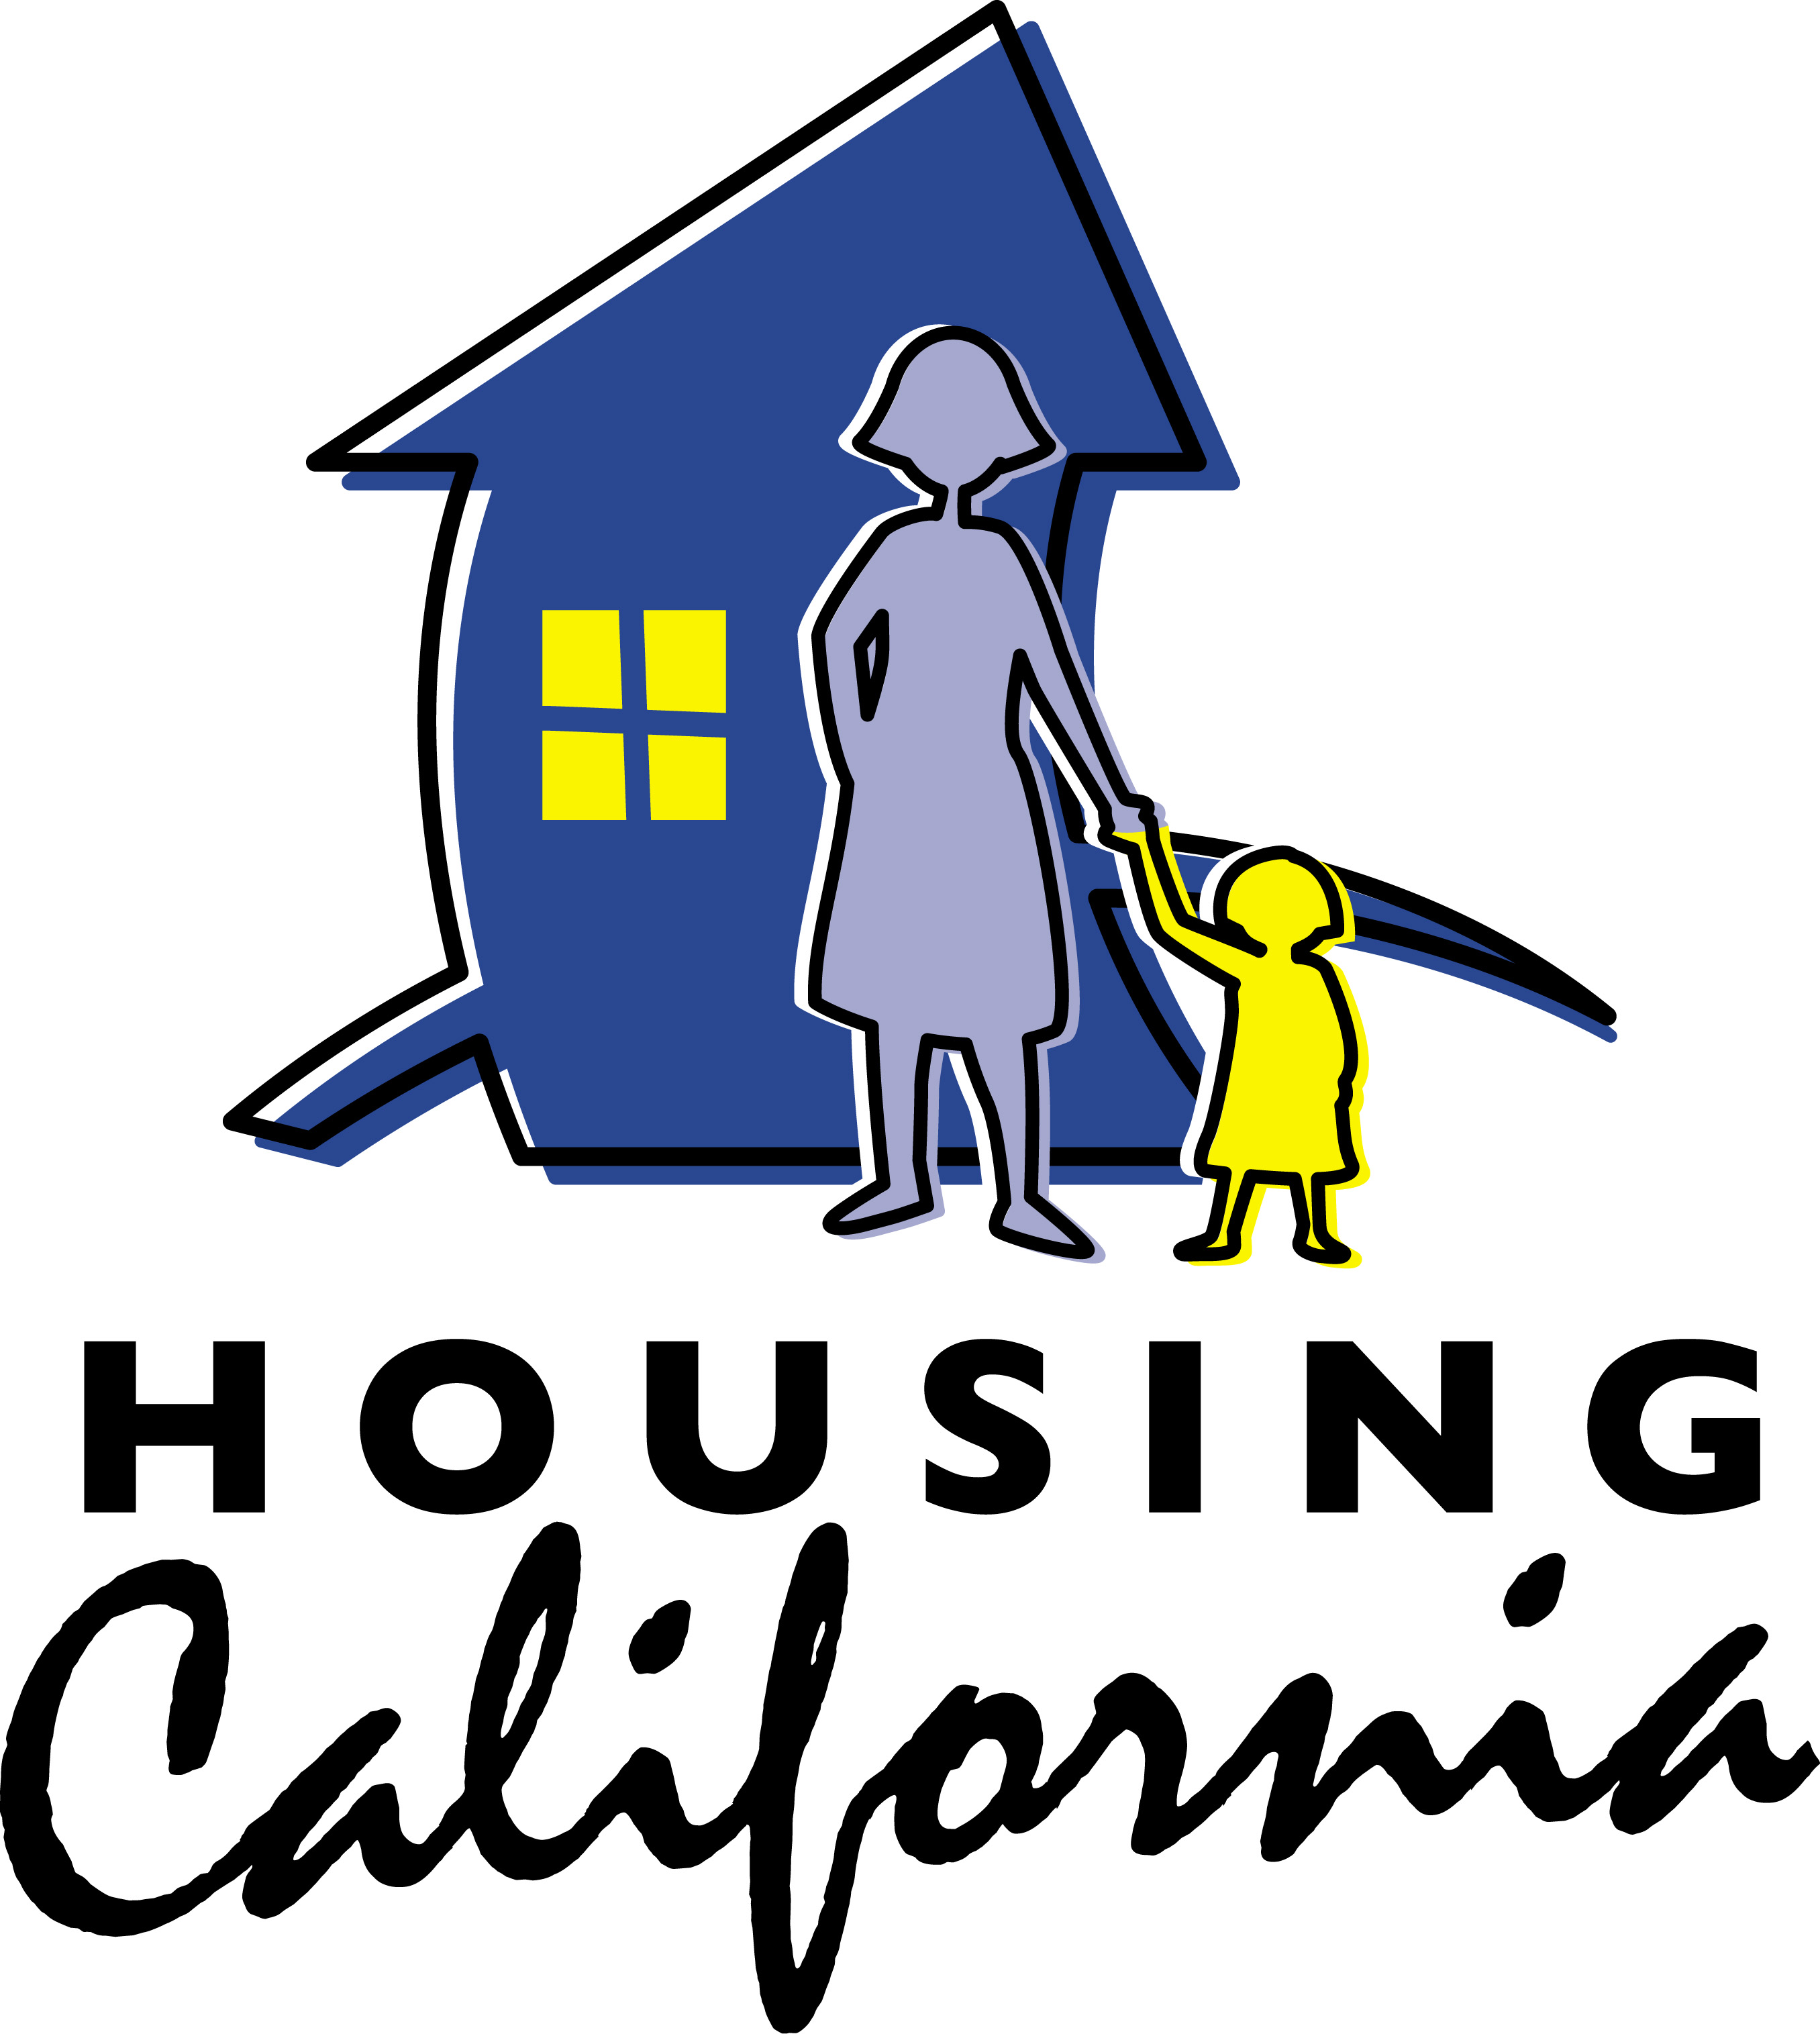 housing_california.jpg